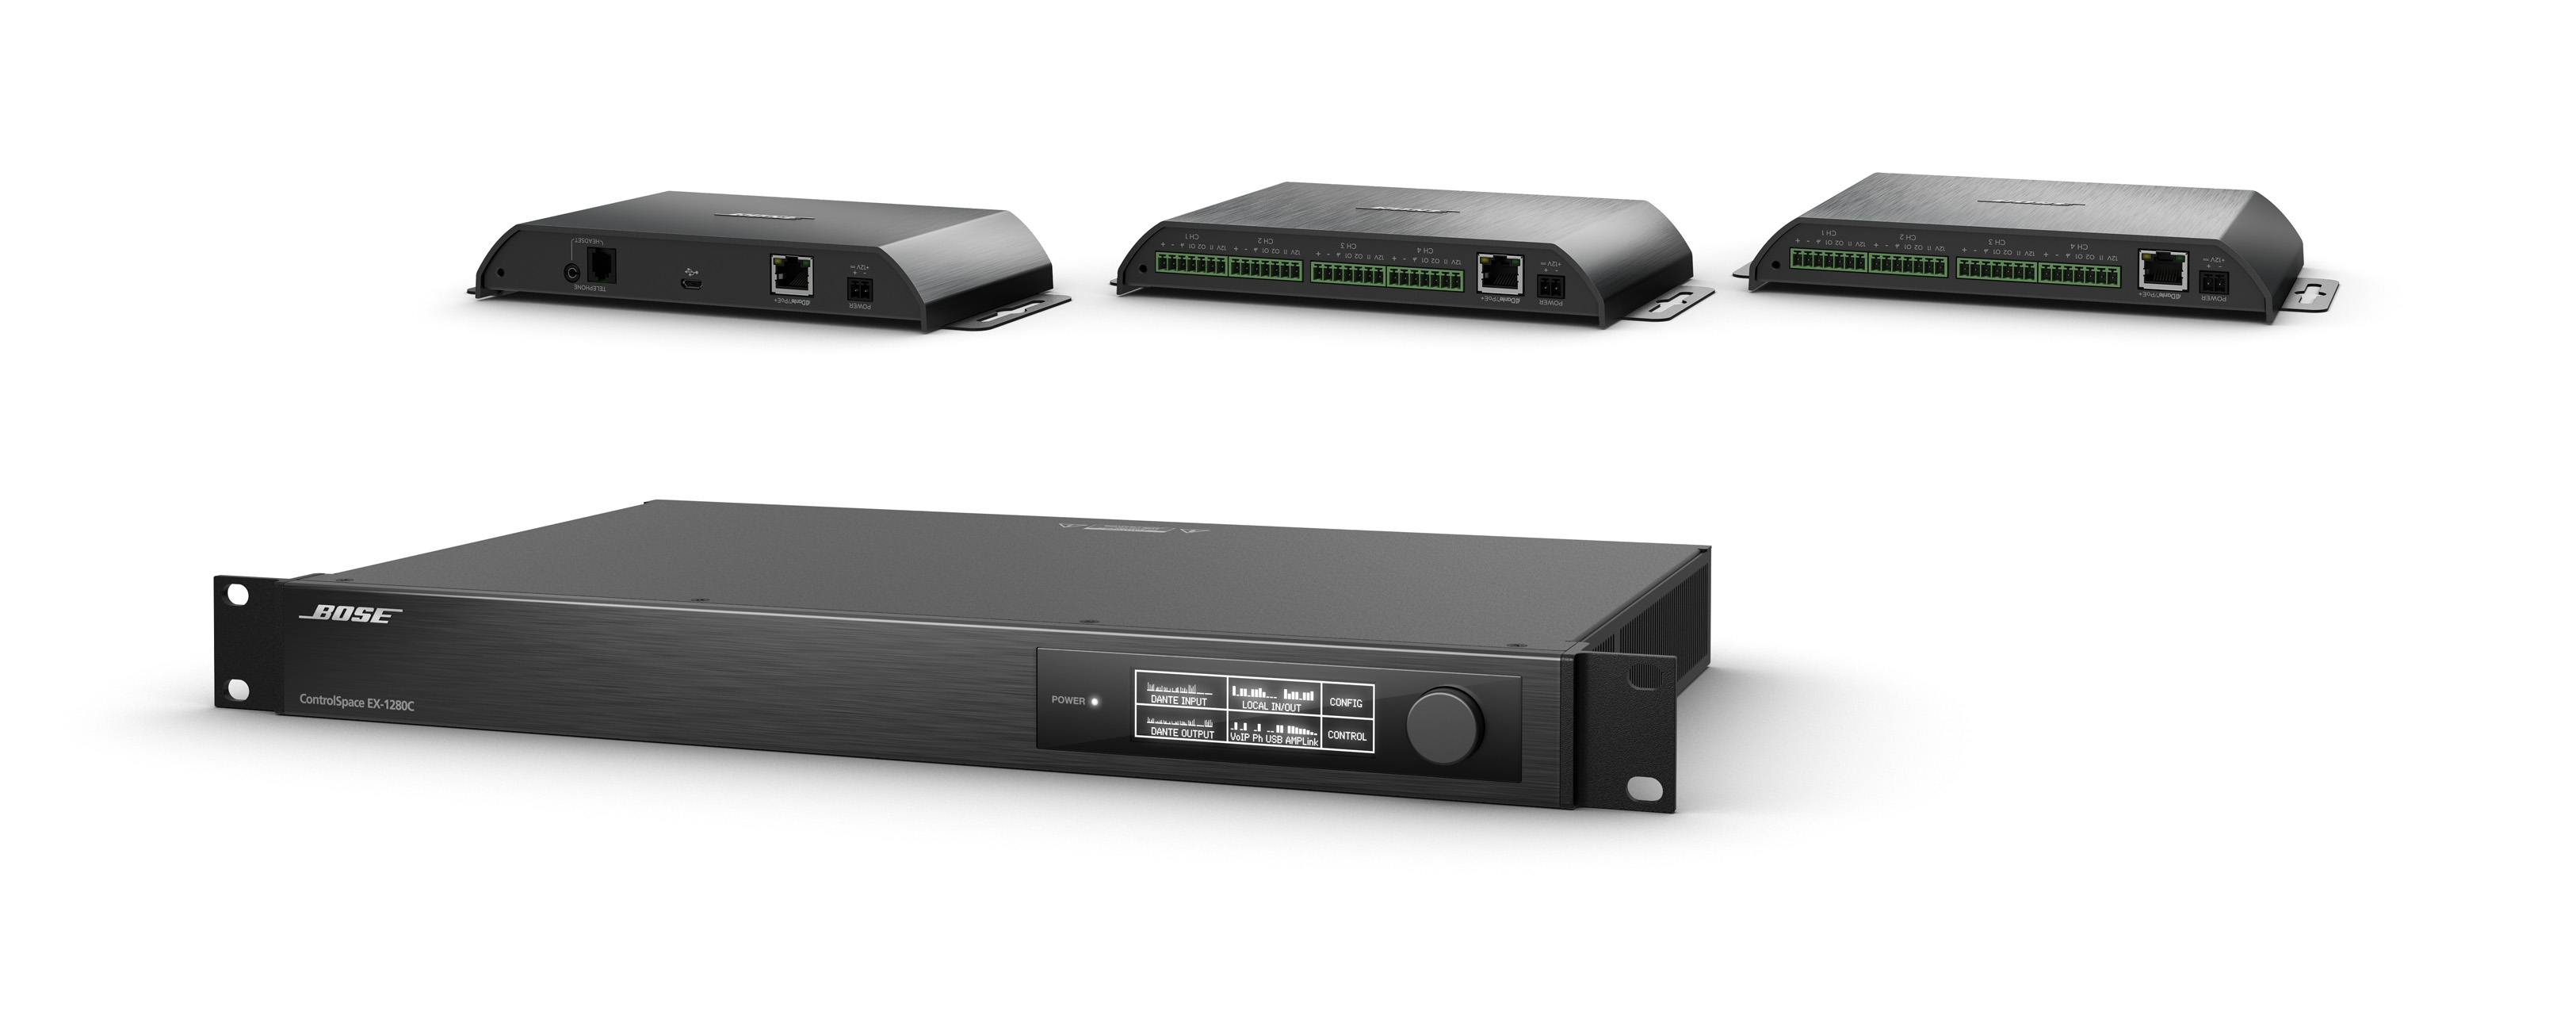 Bose Professional Now Shipping the ControlSpace EX Audio Conferencing System